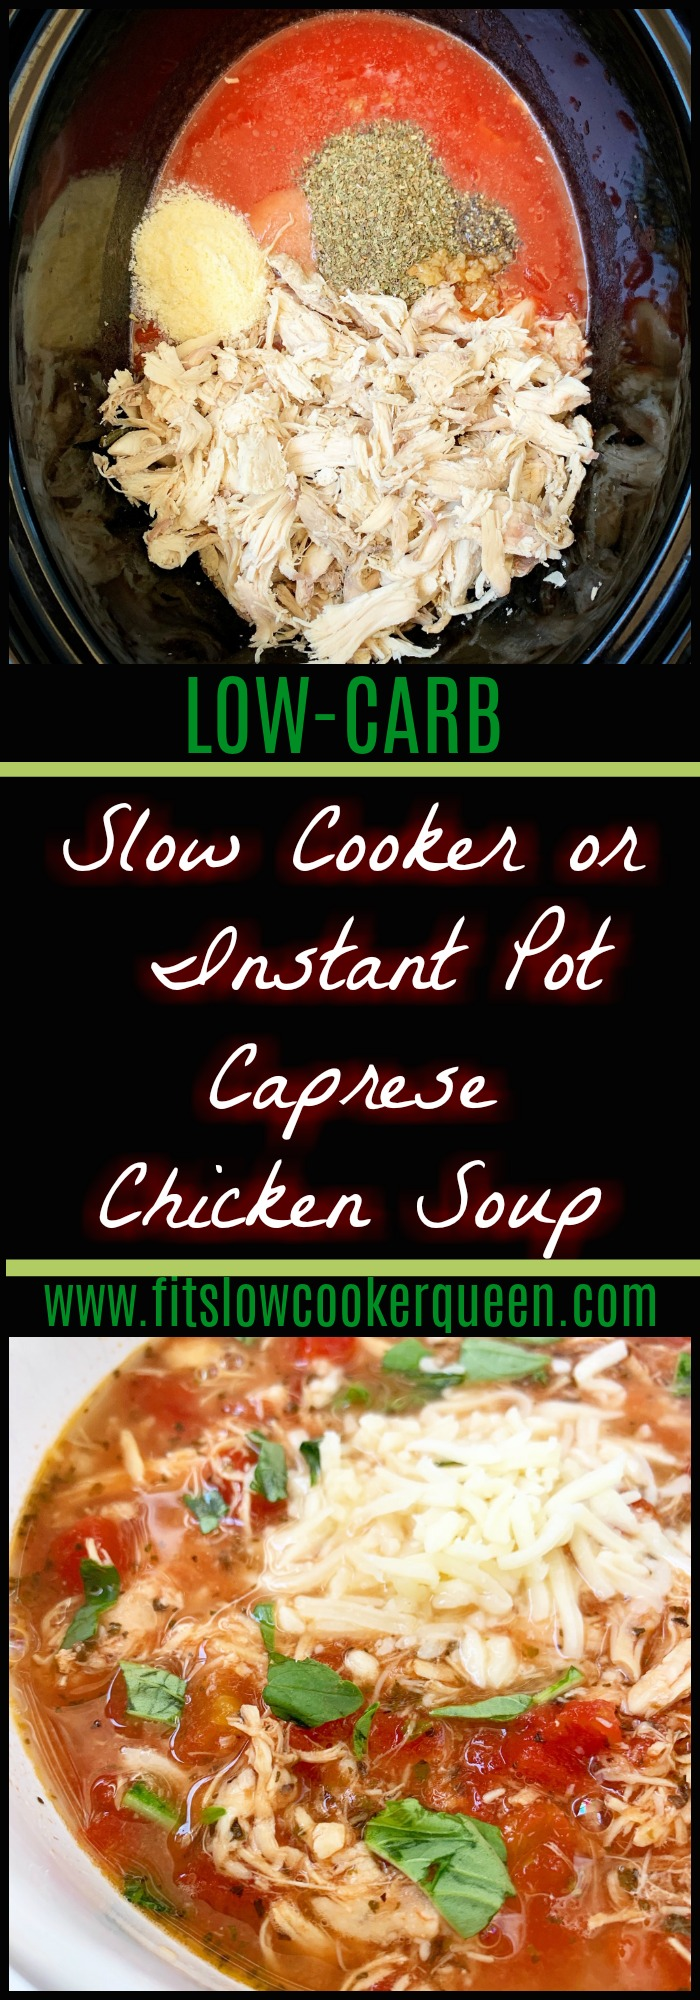 Caprese chicken soup! This low carb recipe uses caprese ingredients - chicken, tomatoes, basil, mozzarella & can be made in your slow cooker or Instant Pot.